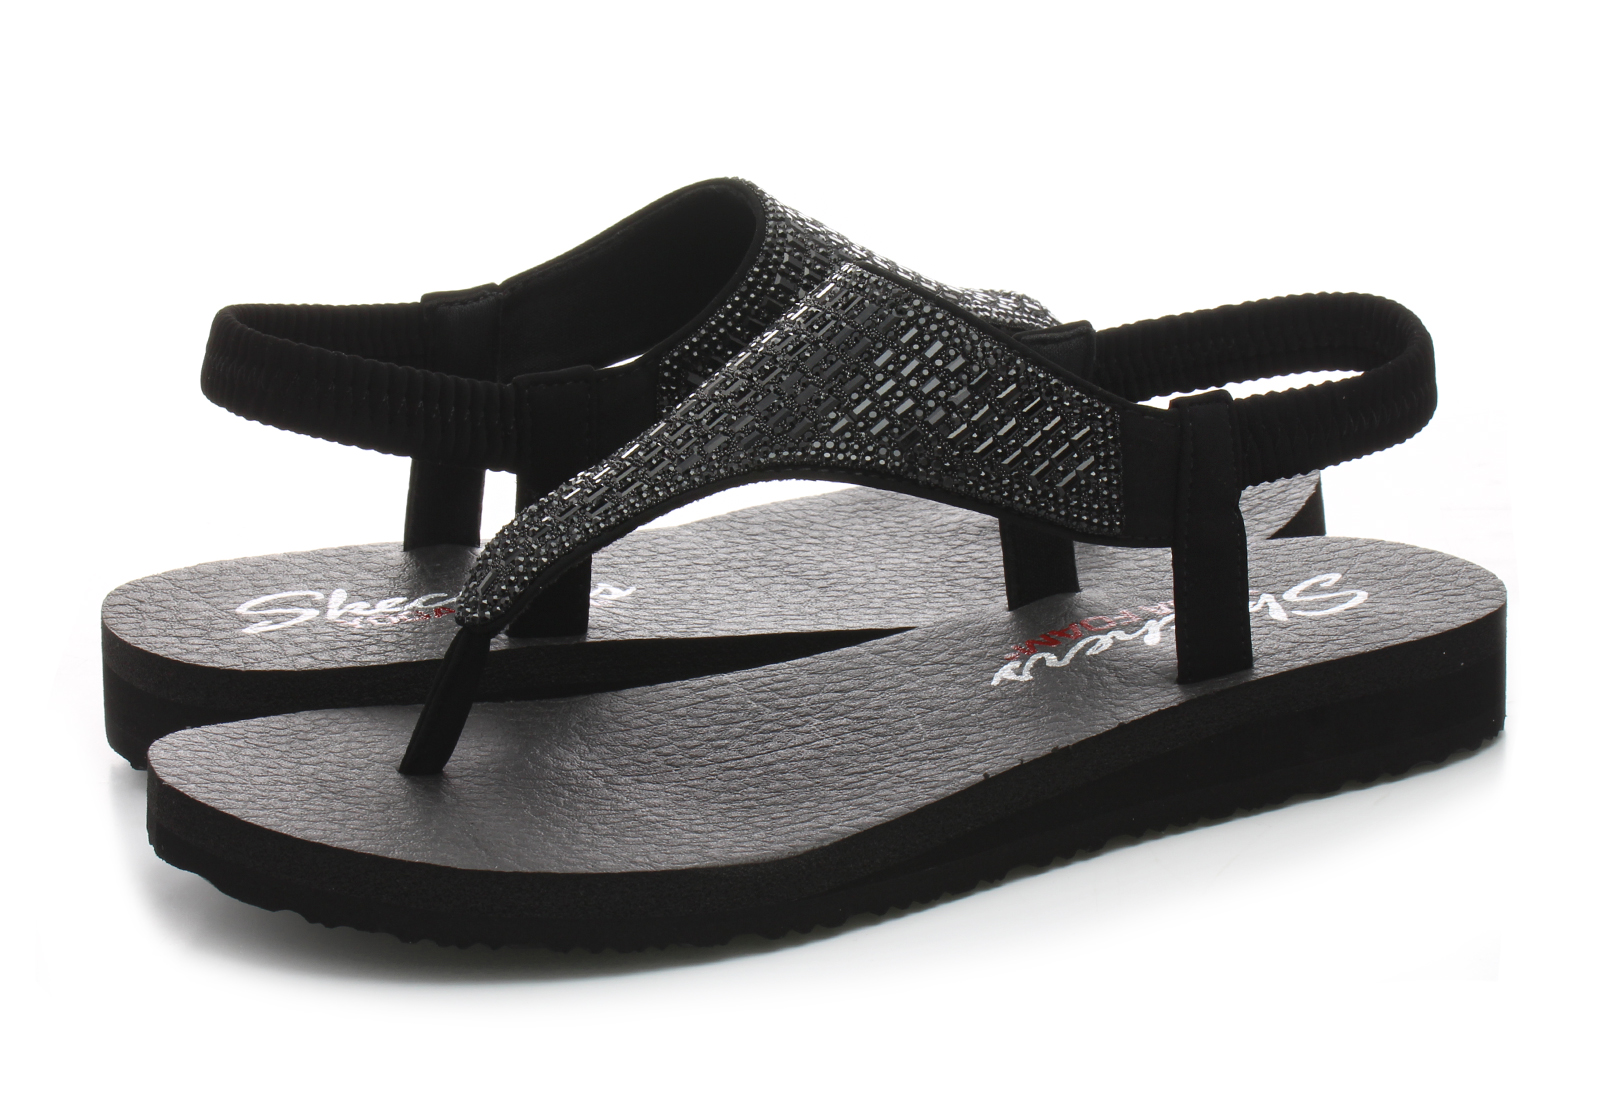 7b11cfbede1 Skechers Sandals - Meditation - Rock Crown - 31560-bbk - Online ...